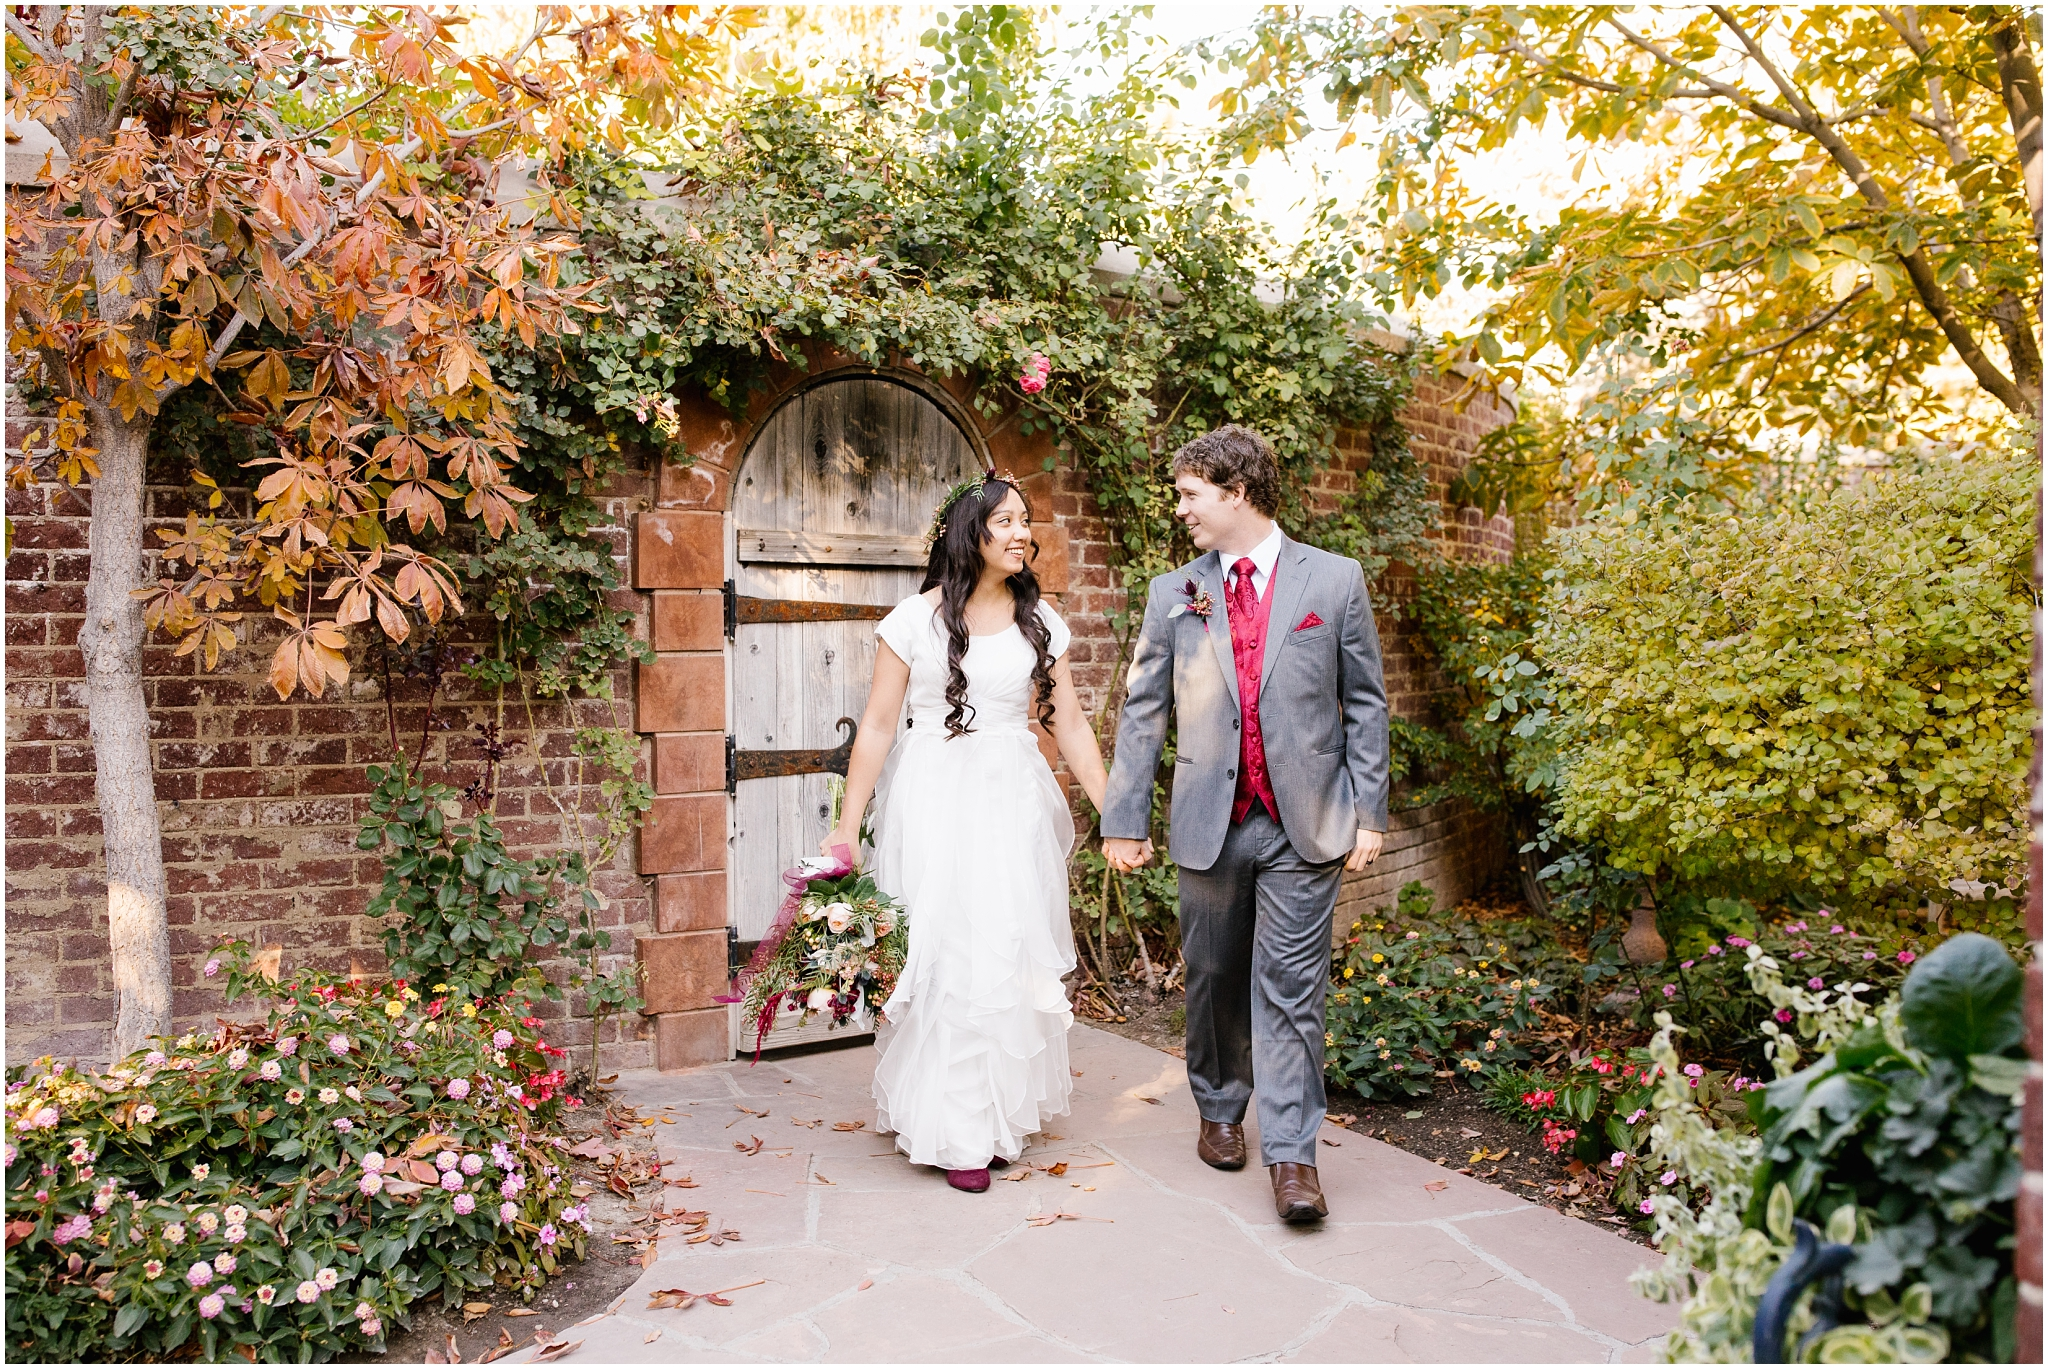 JB-Bridals-28_Lizzie-B-Imagery-Utah-Wedding-Photographer-Utah-County-Thanksgiving-Point-Ashton-Gardens.jpg